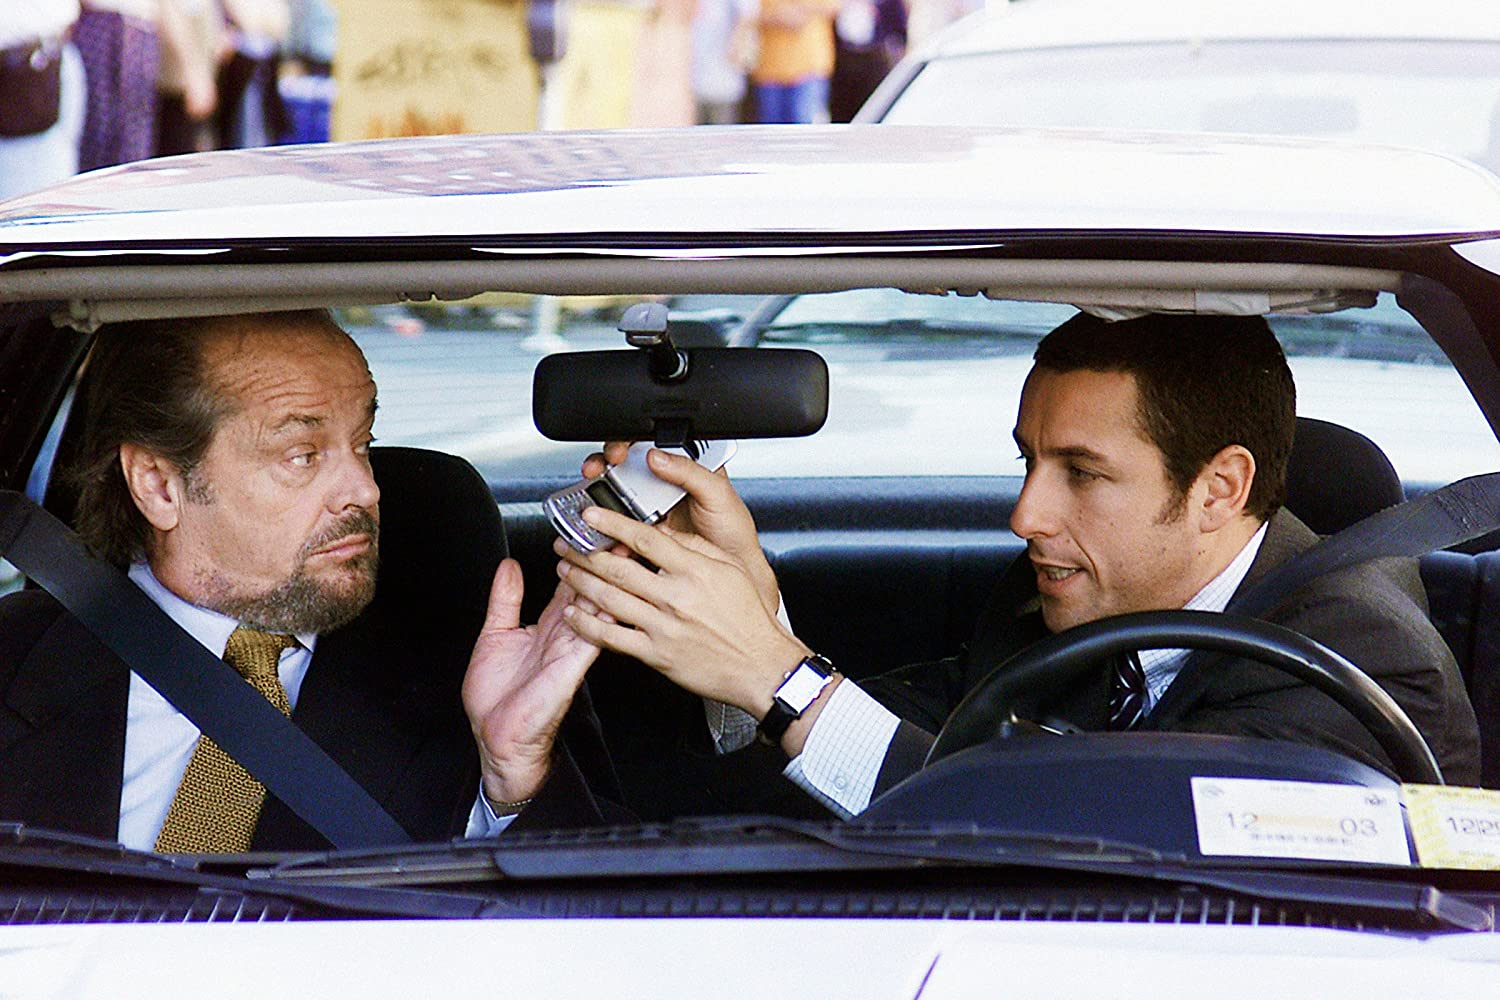 Jack Nicholson and Adam Sandler in Anger Management (2003)